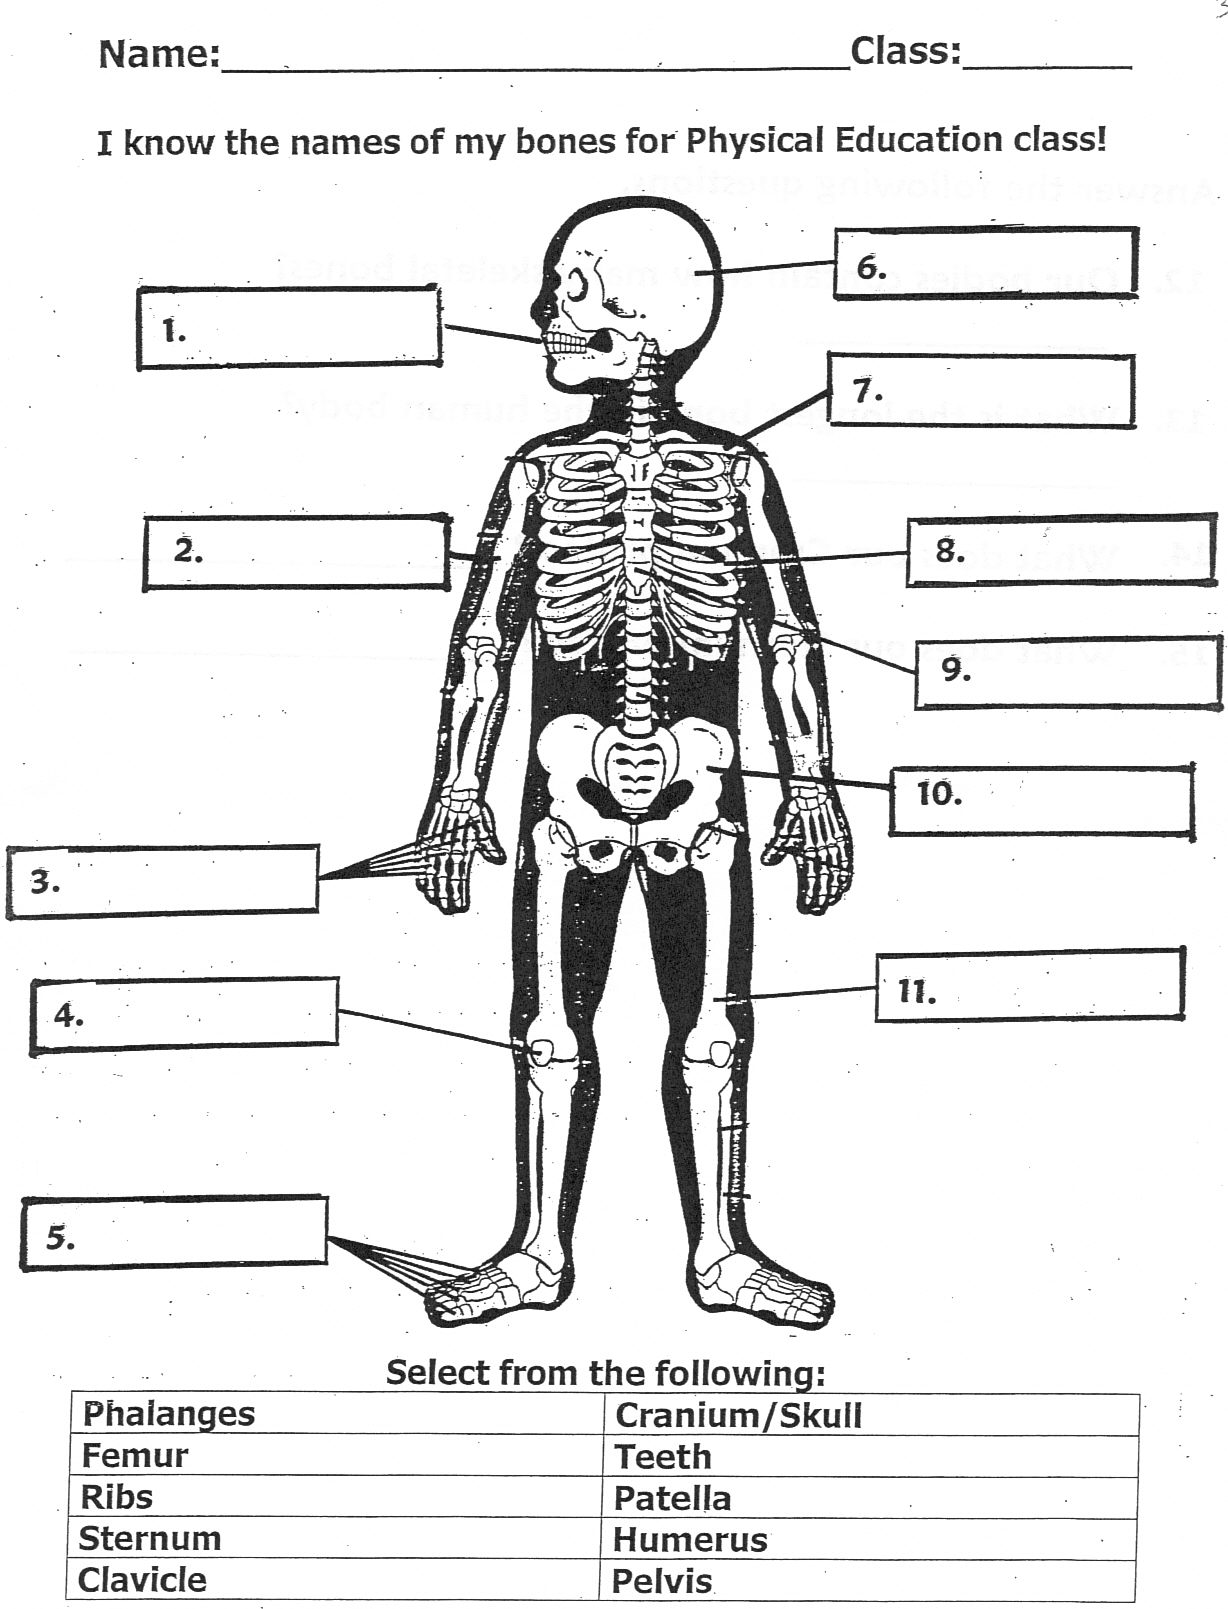 Printables Bones Of The Body Worksheet pete brough this worksheet is a great way for your kids to learn the bones in human body